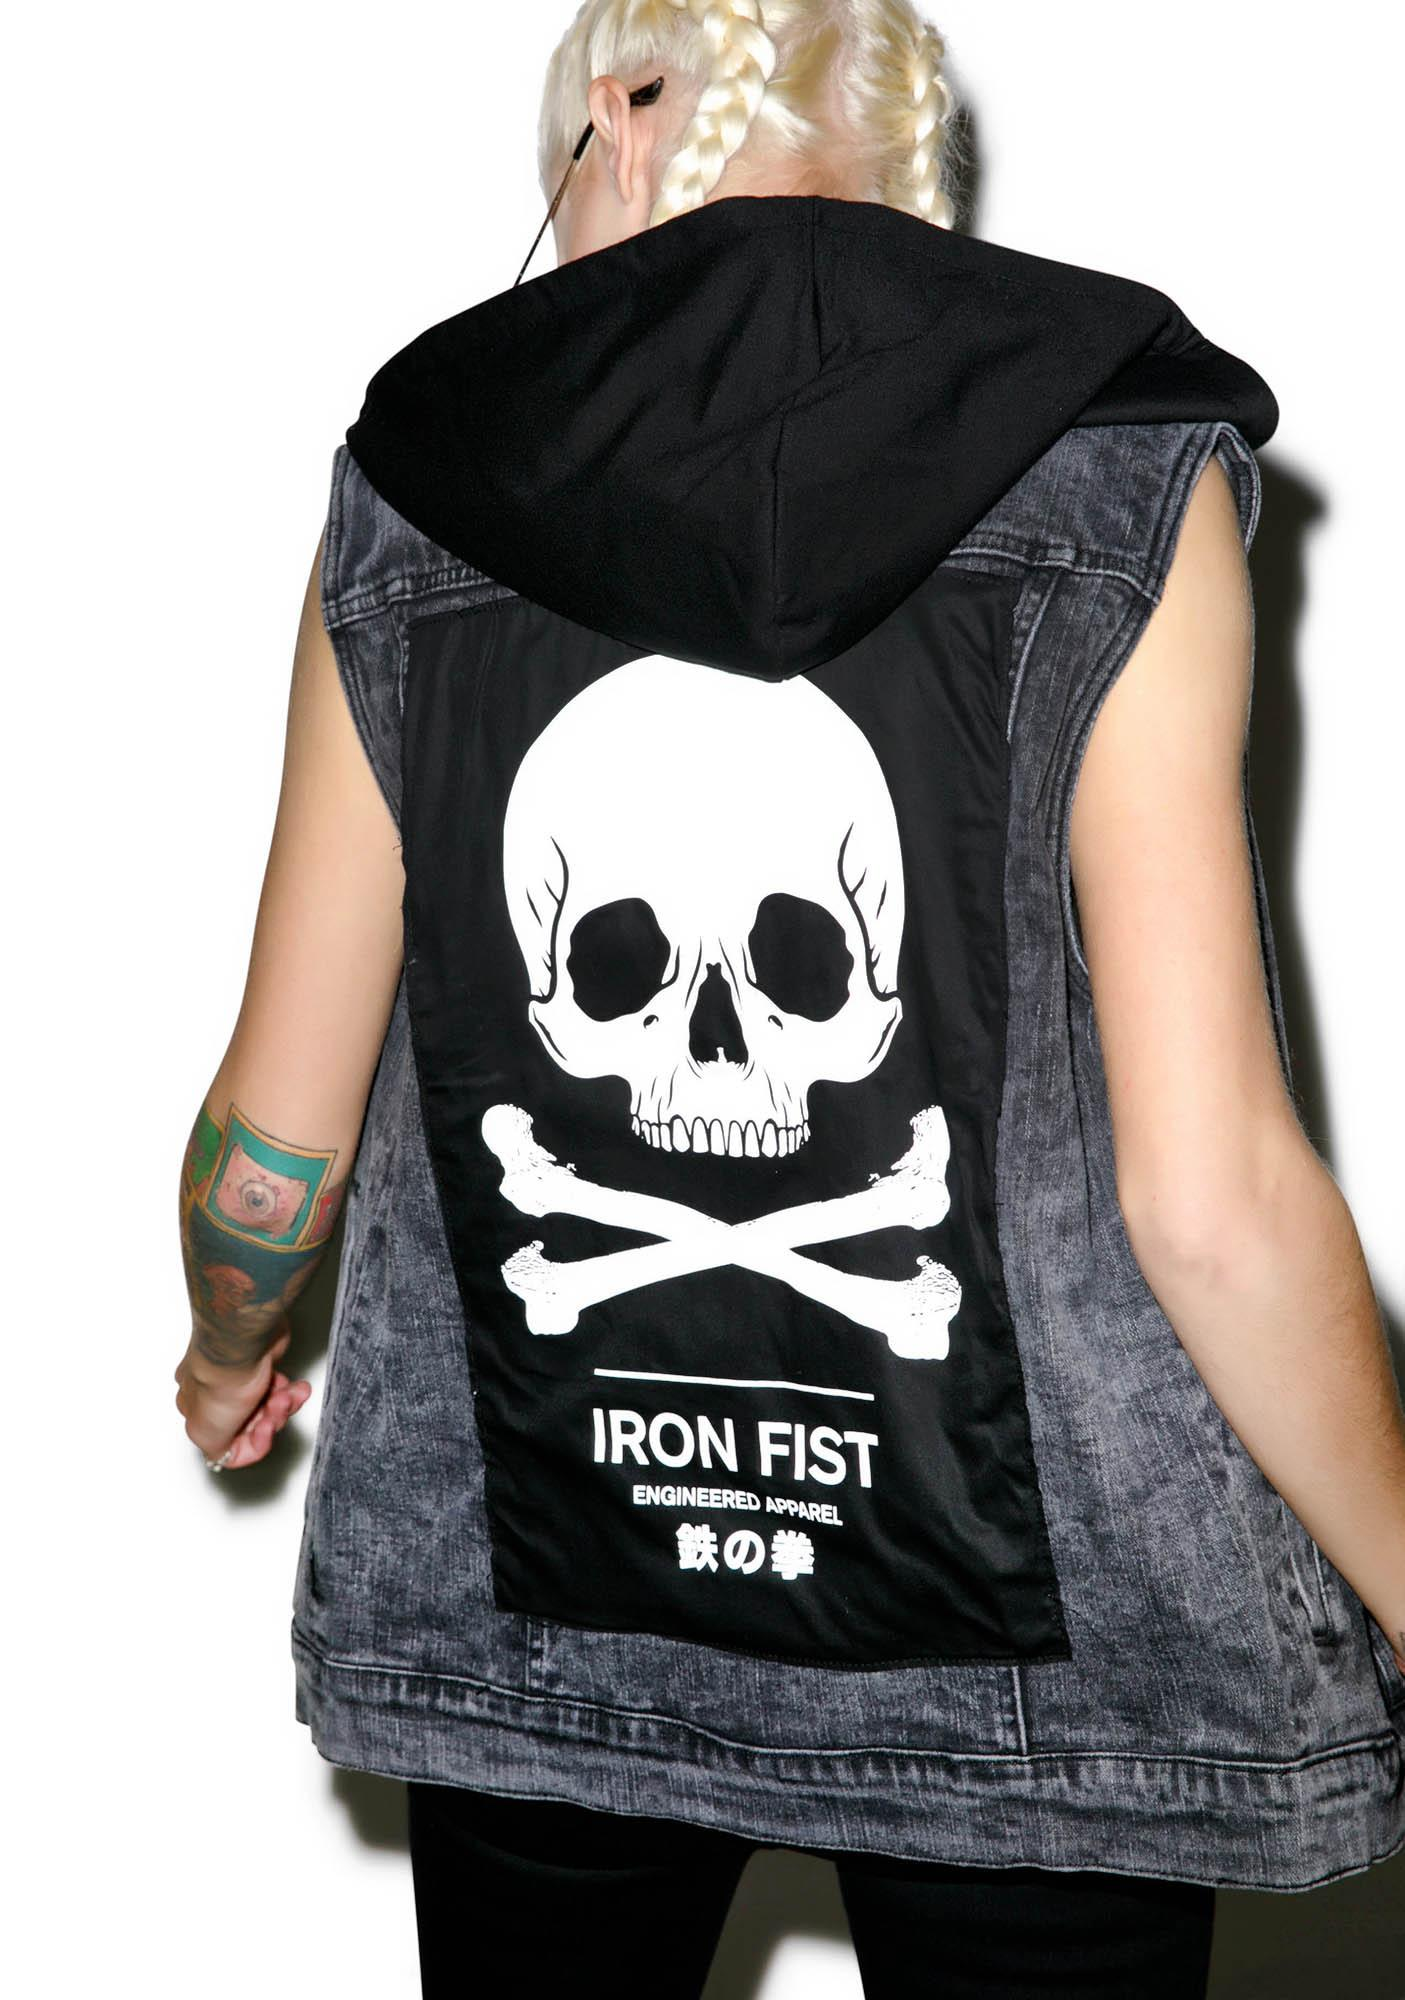 Iron Fist Engineered Sleeveless Trucker Vest